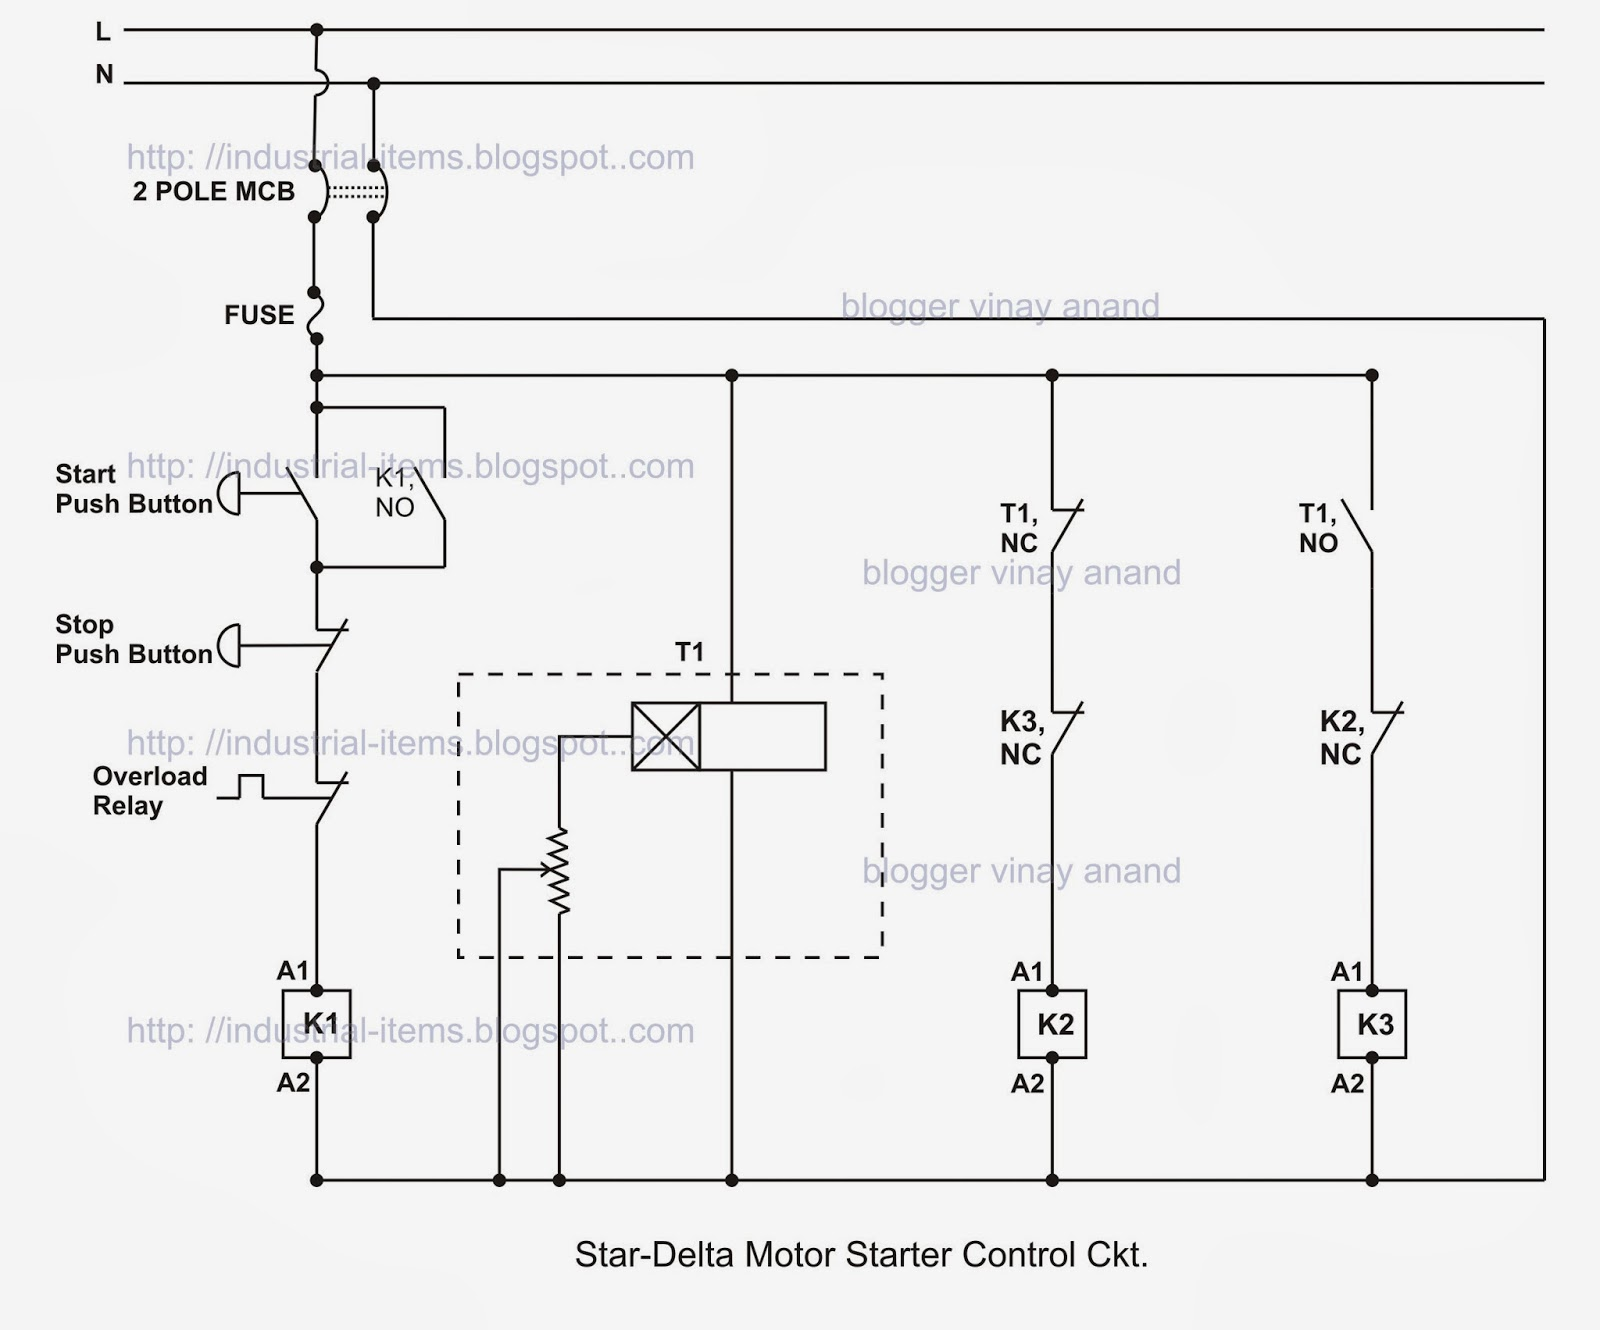 hight resolution of likewise brushless dc motor controller schematic also 3 phase ac wiring diagram likewise diagram of electric motor electric motor drive